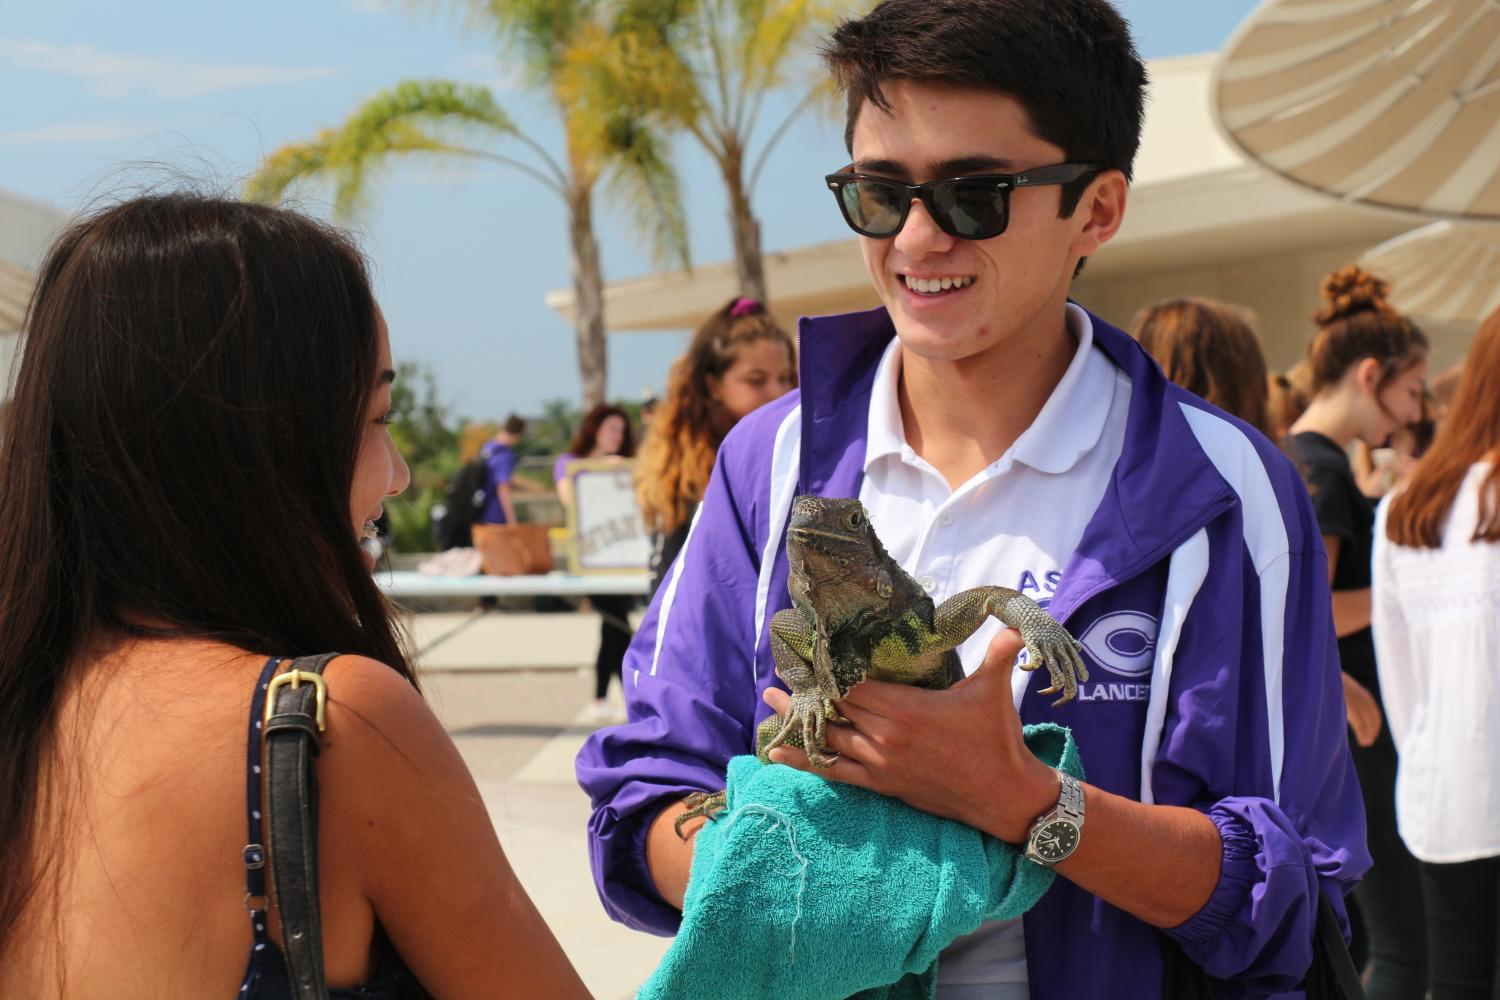 Senior, Max Ward, holds iguana, Iggy, as he discusses the Green Club with sophomore, Tram-Anh Pham, at the club fair.